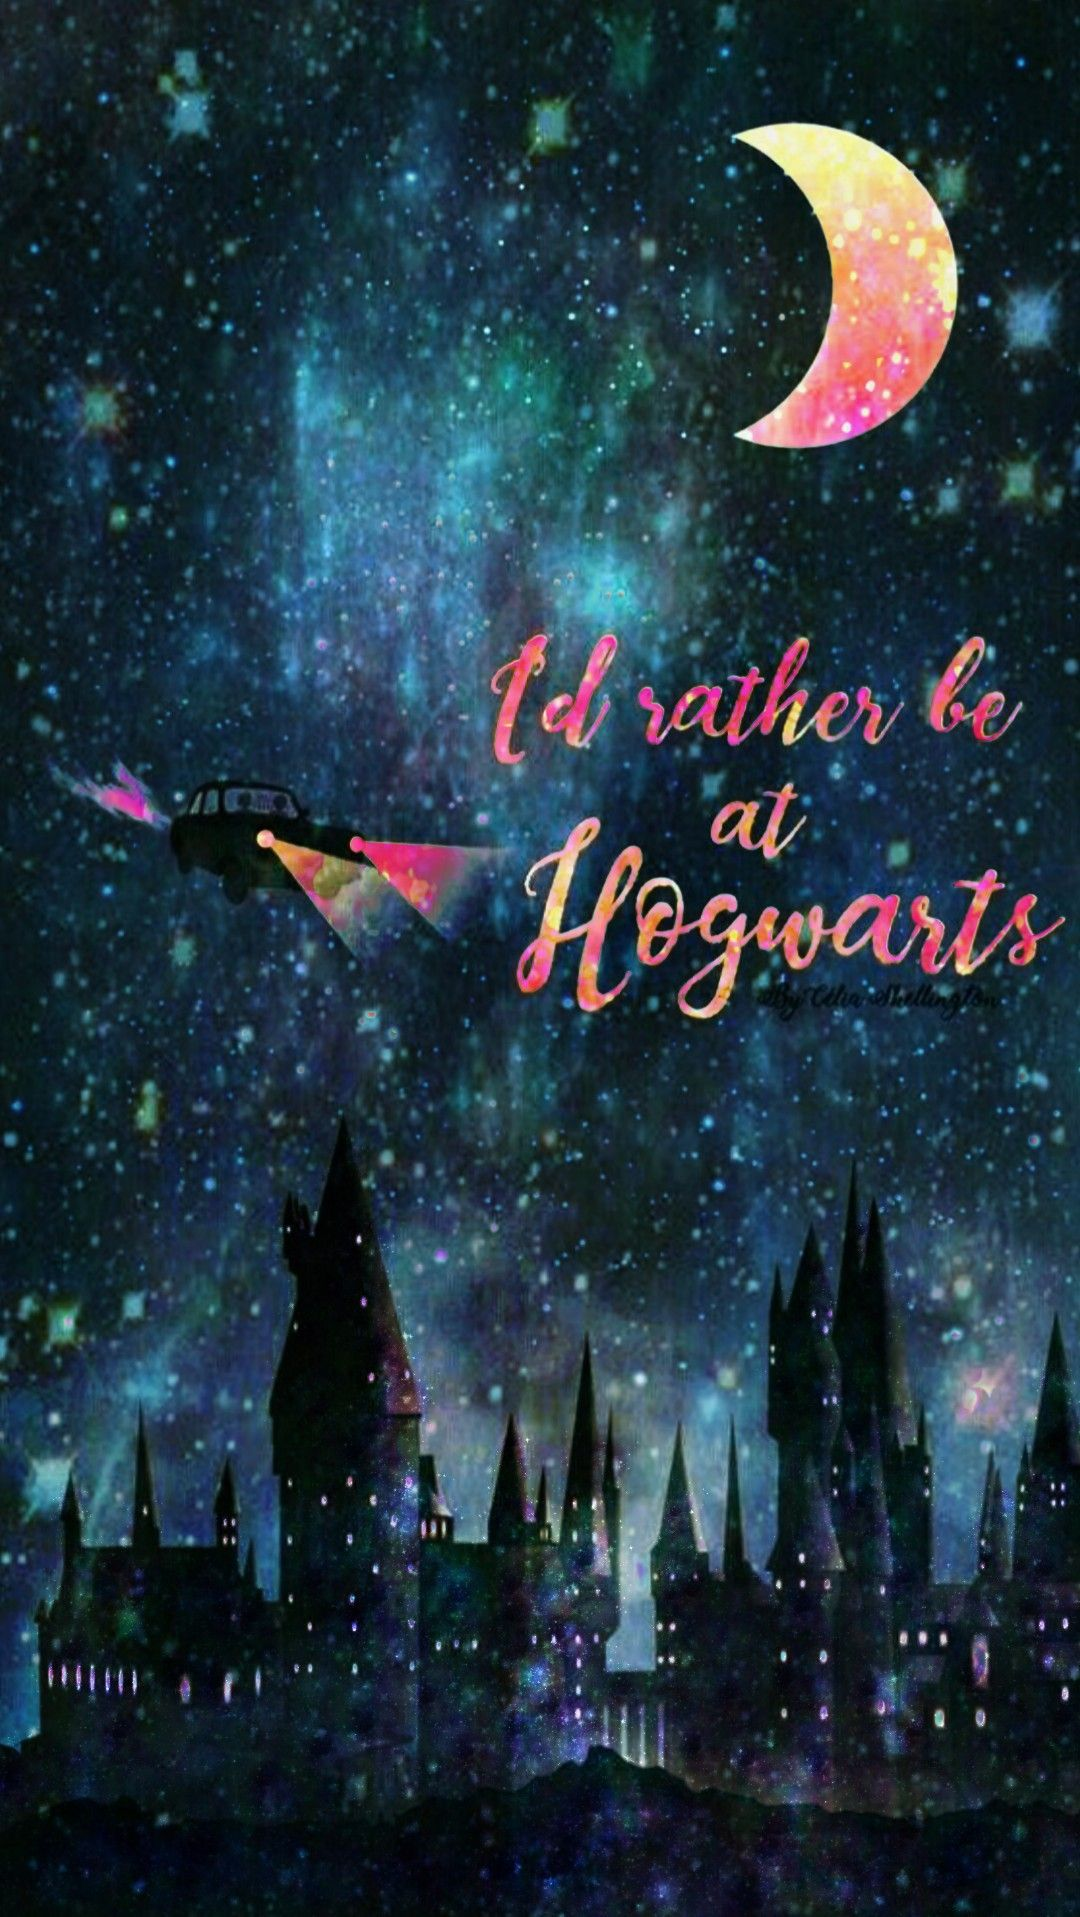 Hogwarts Night Made By Me Galaxy Glitter Sparkles Wallpapers Backgrounds Nigh Harry Potter Drawings Harry Potter Iphone Wallpaper Harry Potter Wallpaper